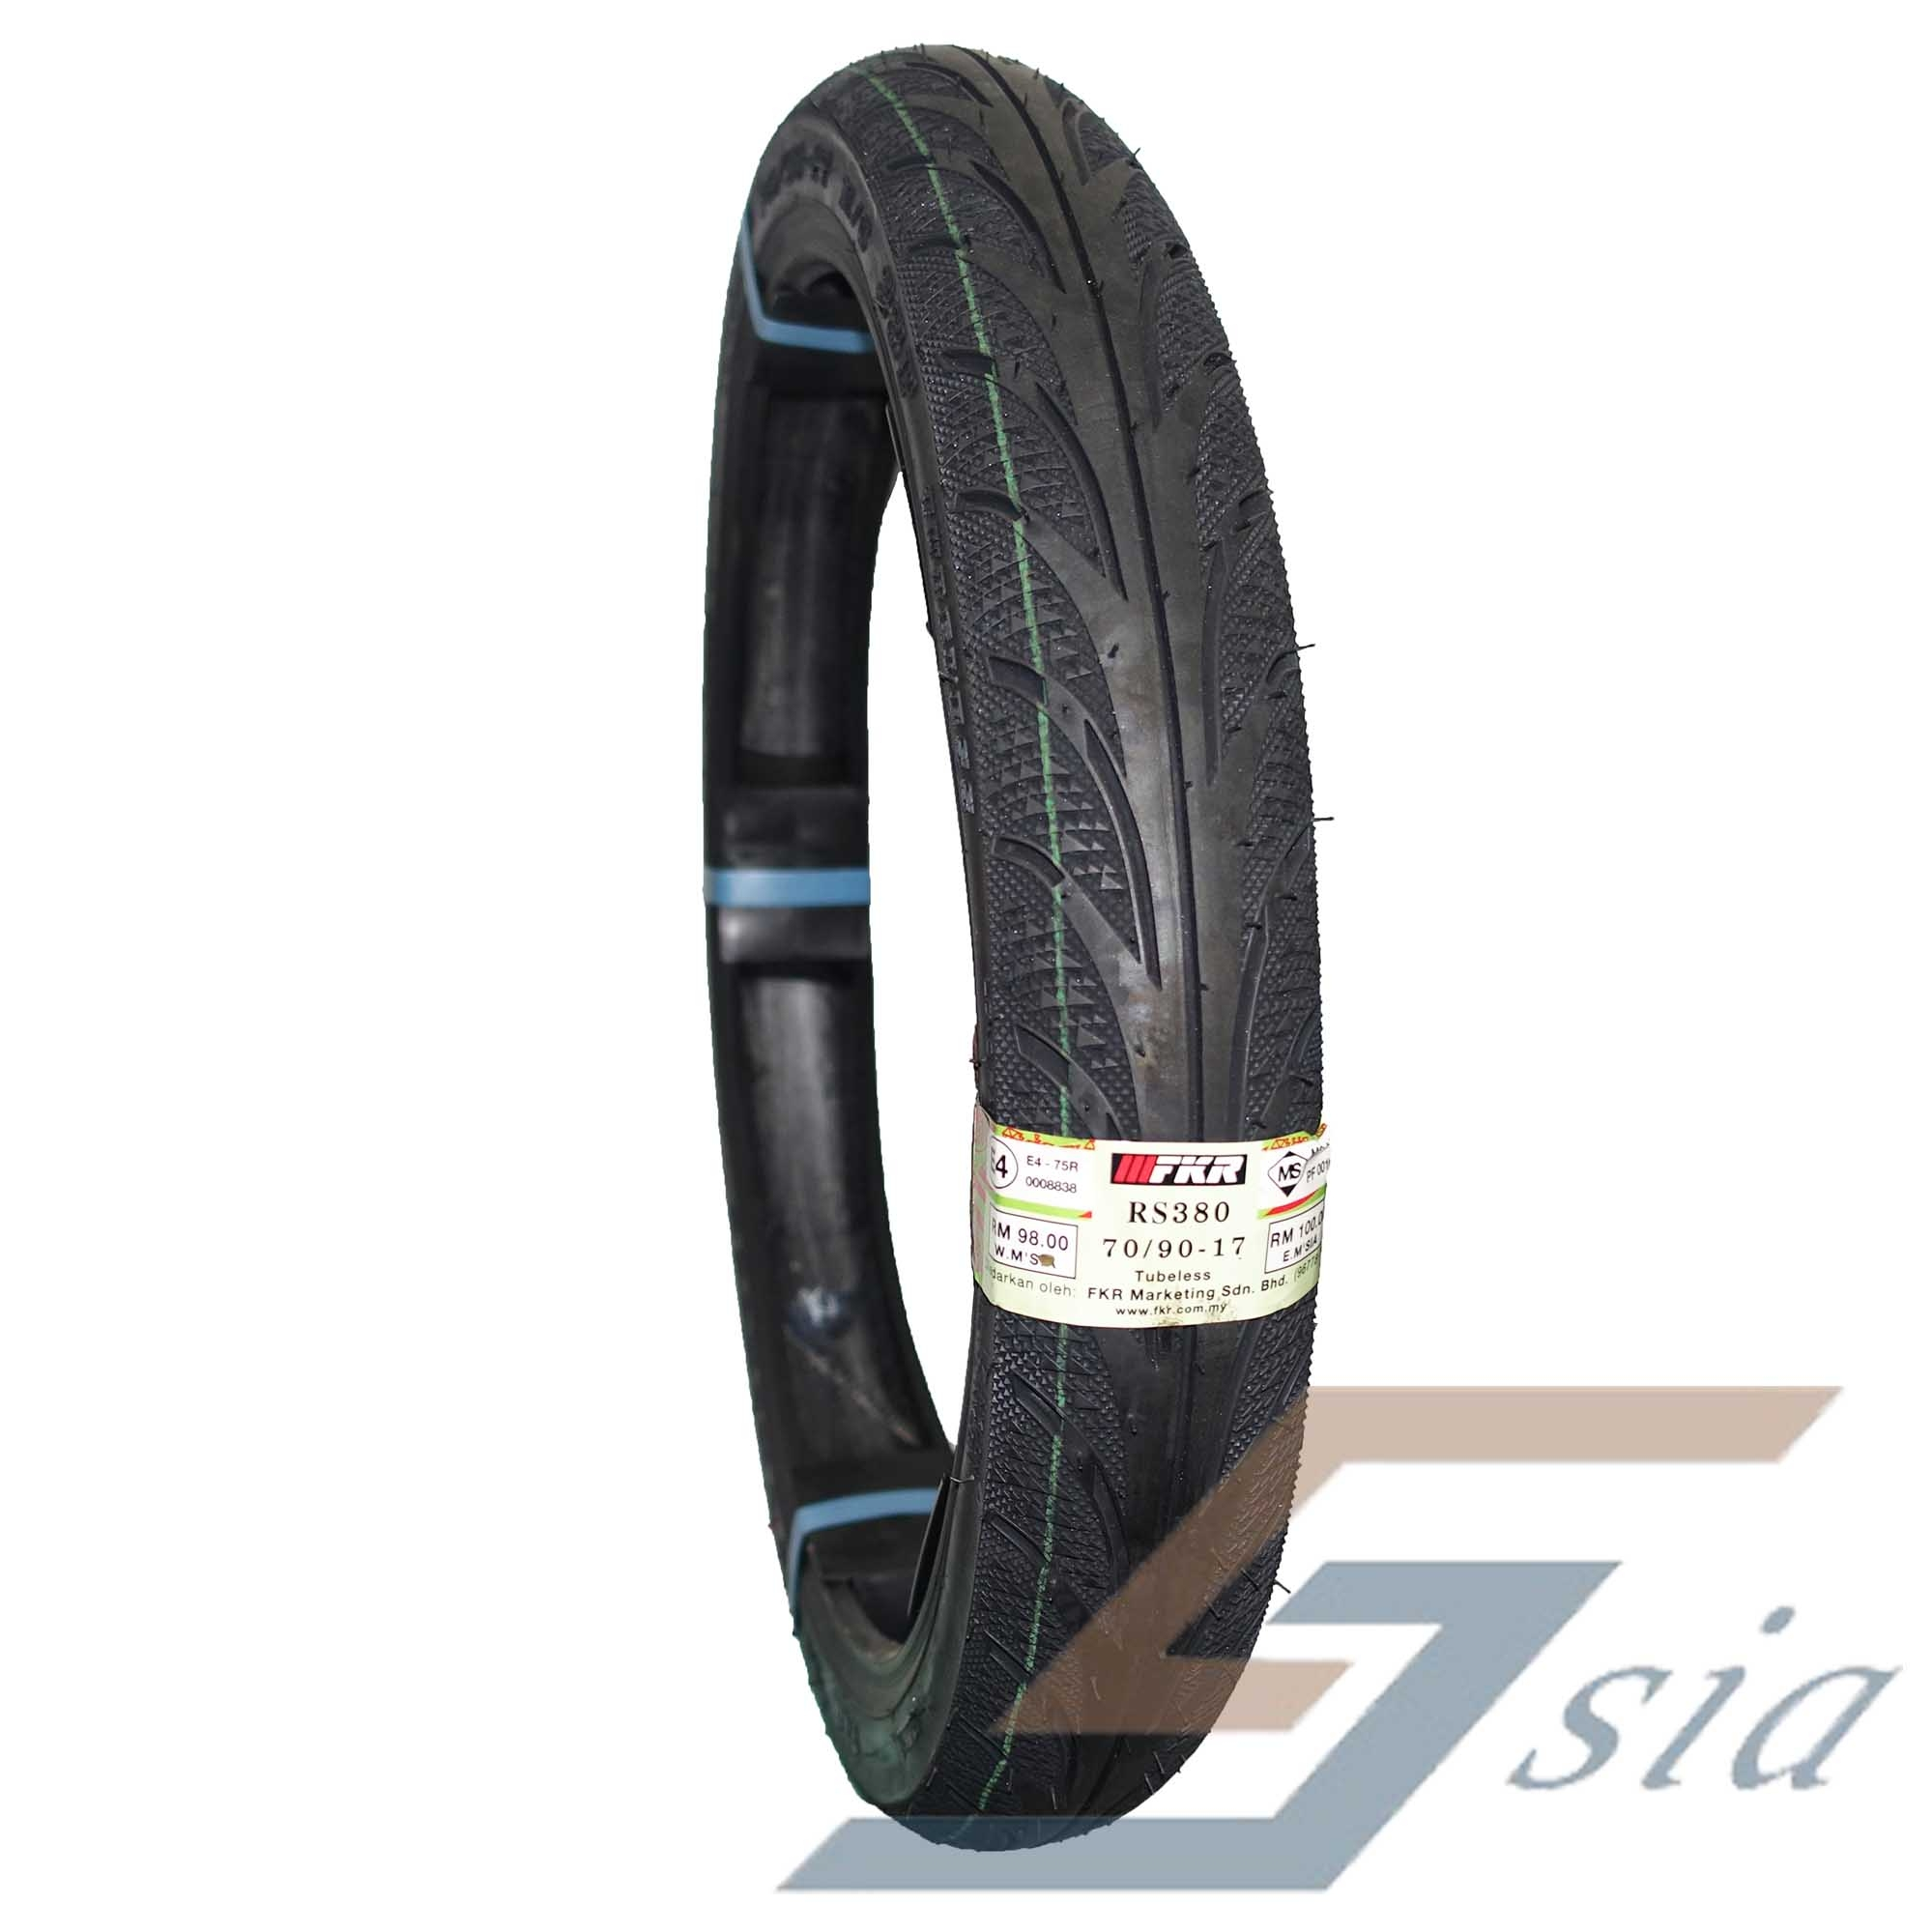 FKR RS380 D''MONTE 70/90-17 Tubesless Tyre Motorcycle